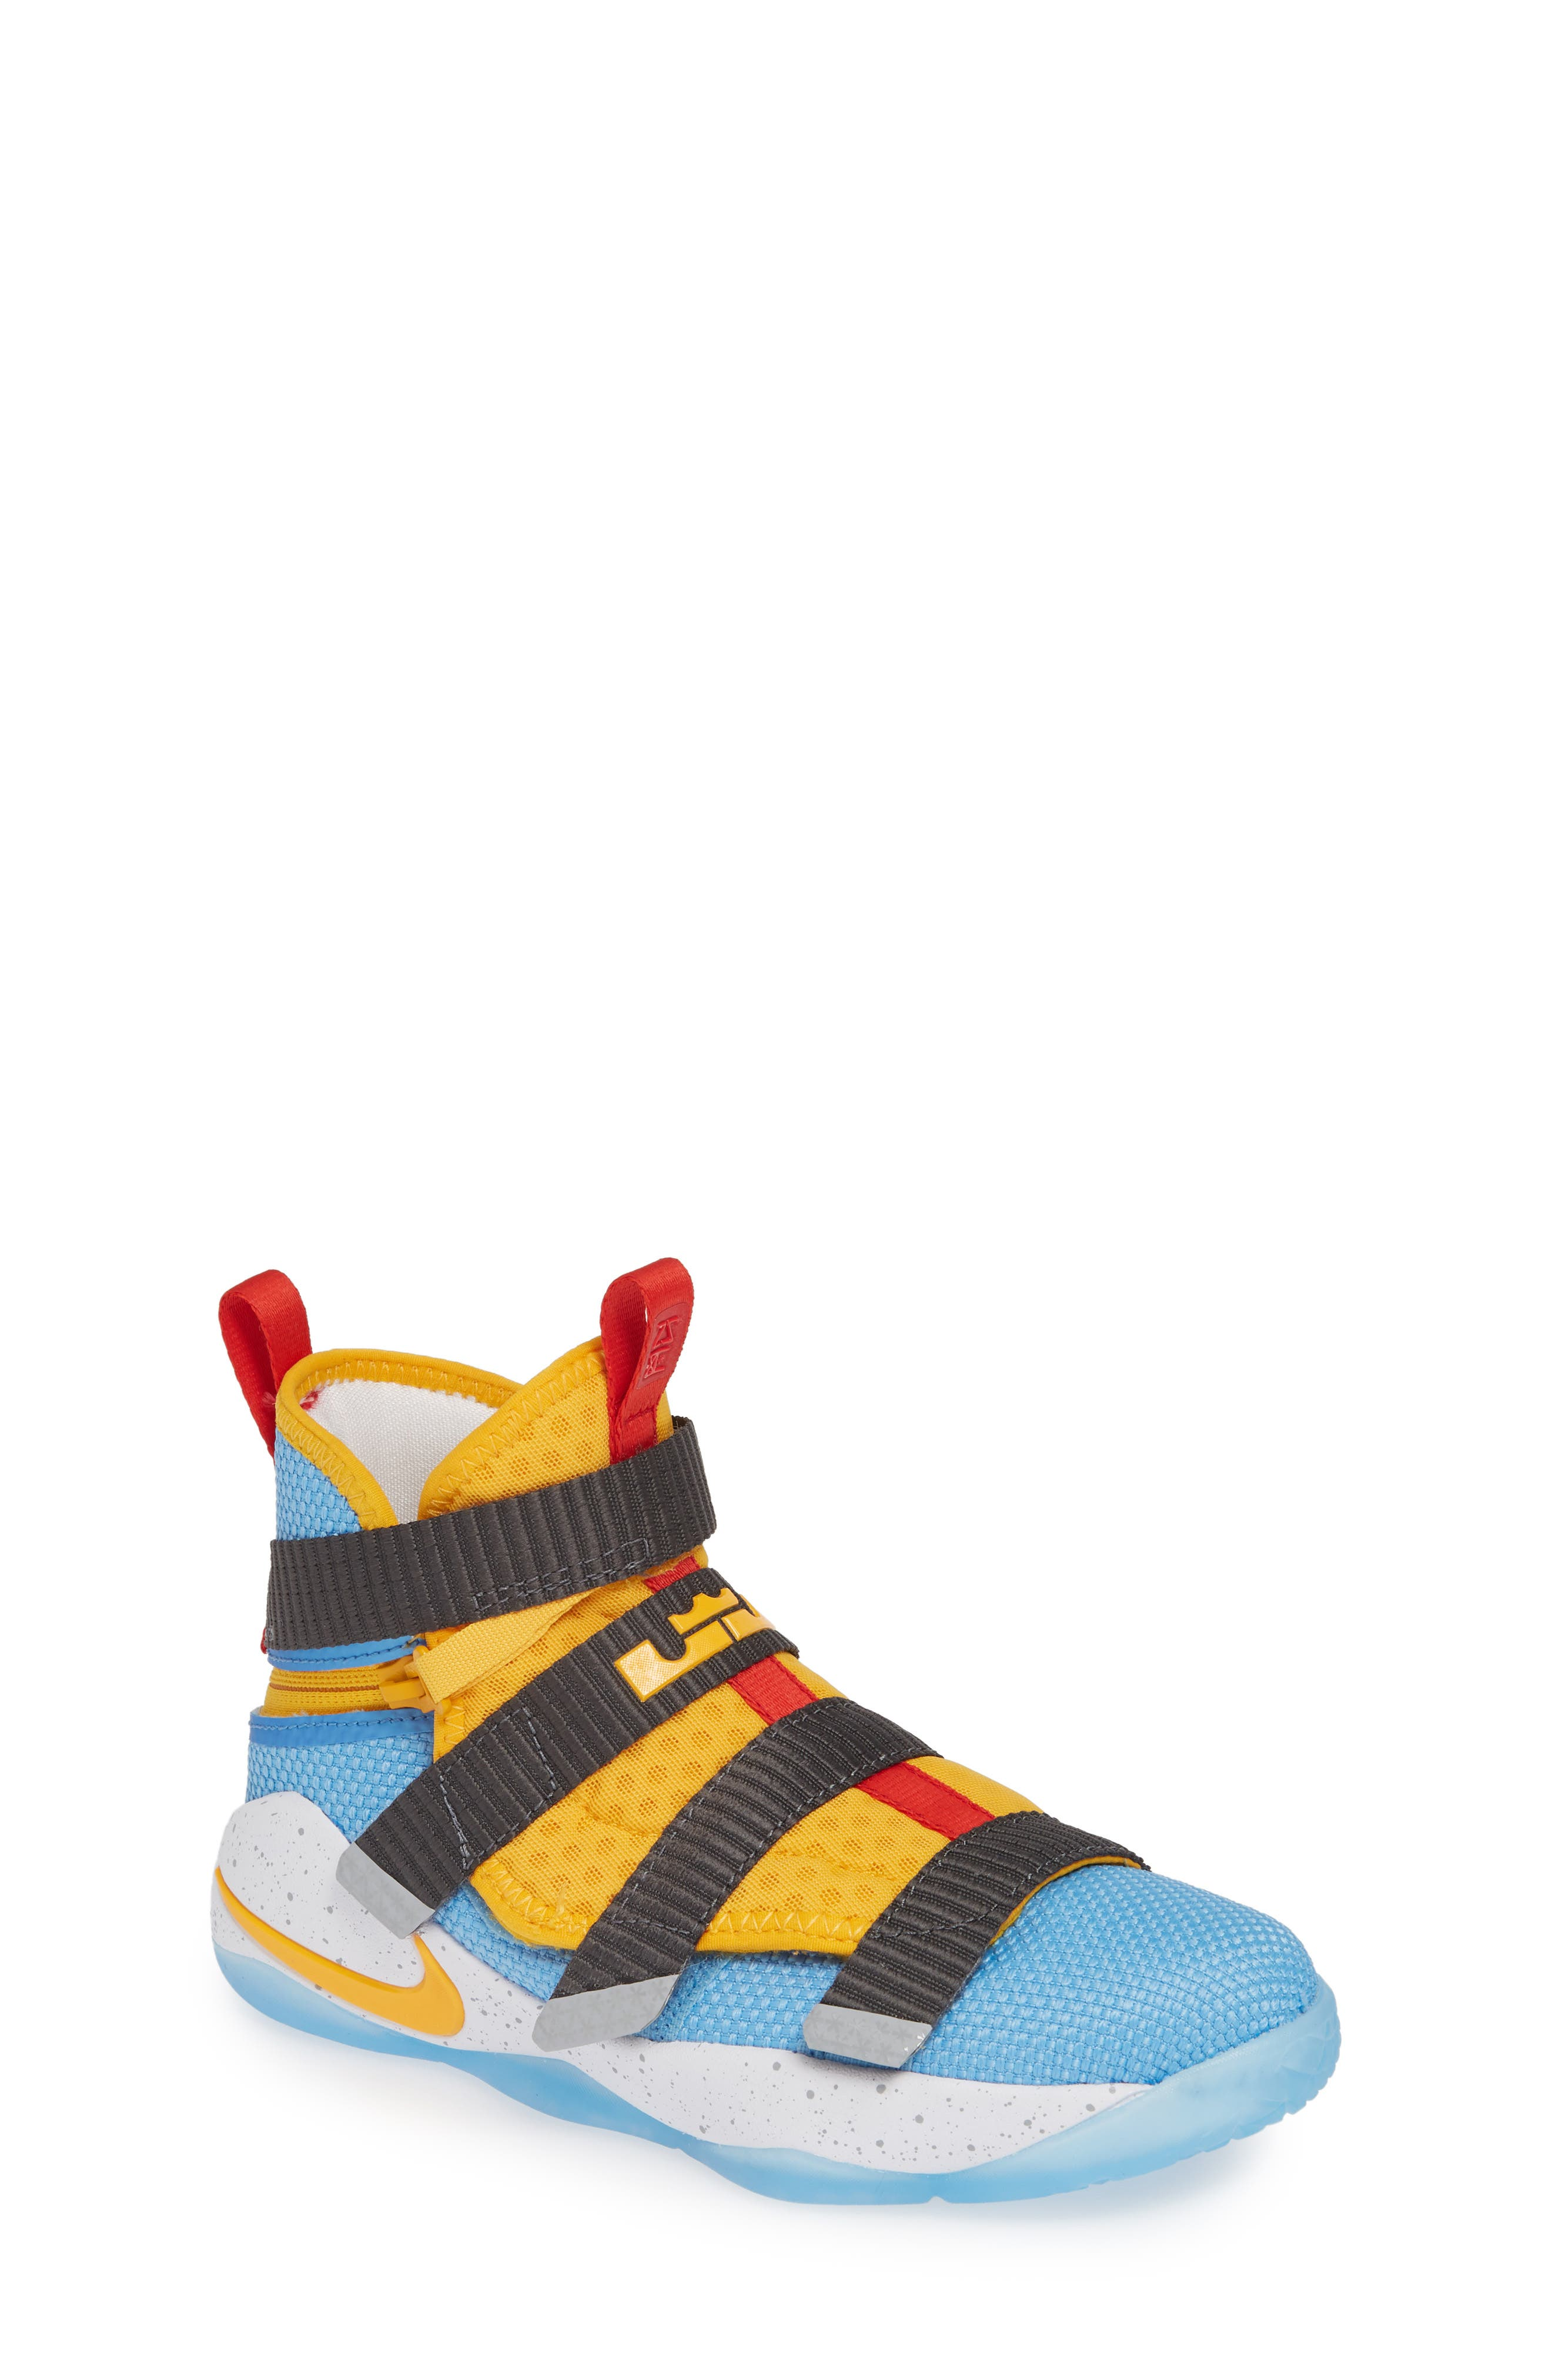 LeBron Soldier XI FlyEase High Top Sneaker,                             Main thumbnail 1, color,                             UNIVERSITY GOLD/ WHITE-RED